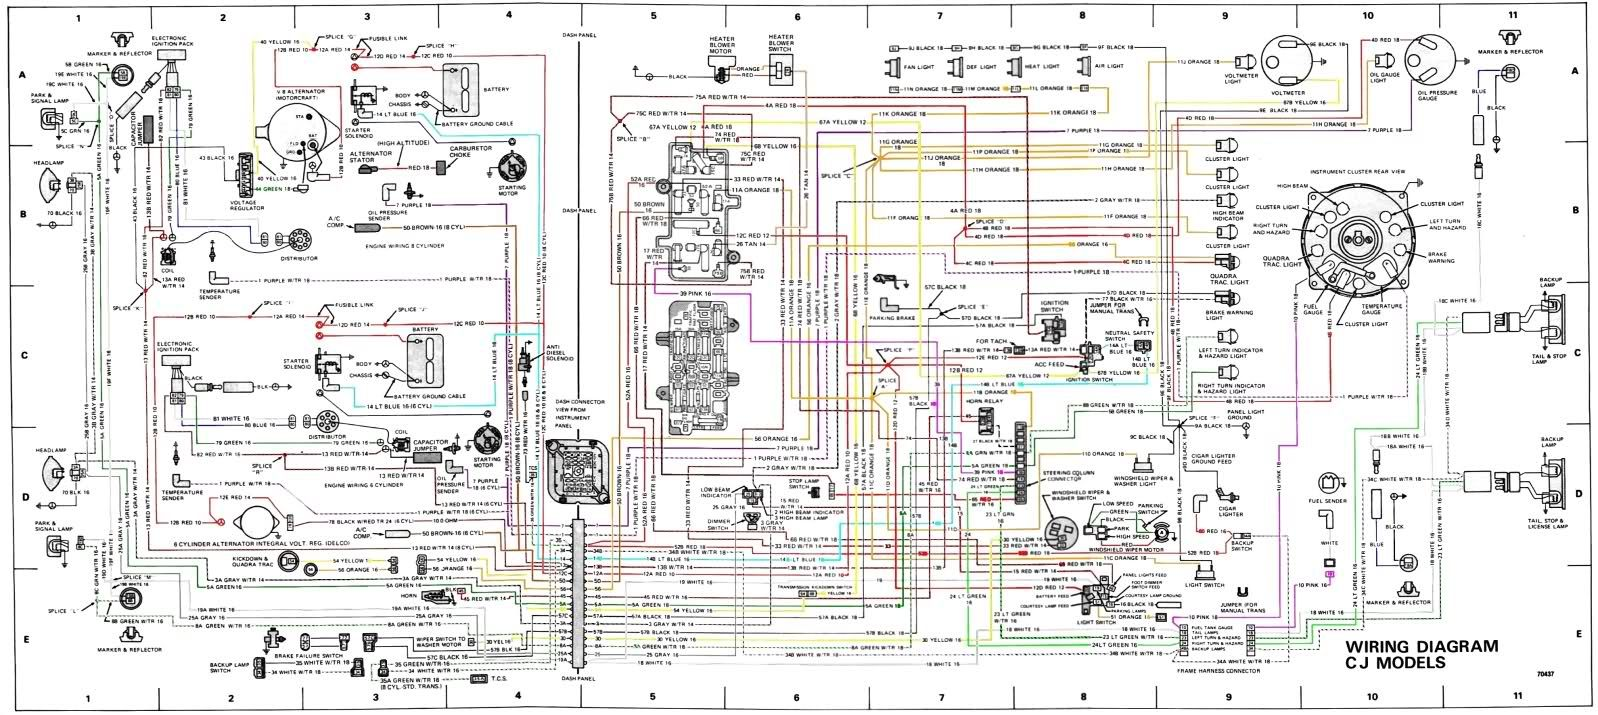 85 cj5 wiring diagram wiring diagram used 85 cj5 wiring diagram [ 1598 x 715 Pixel ]